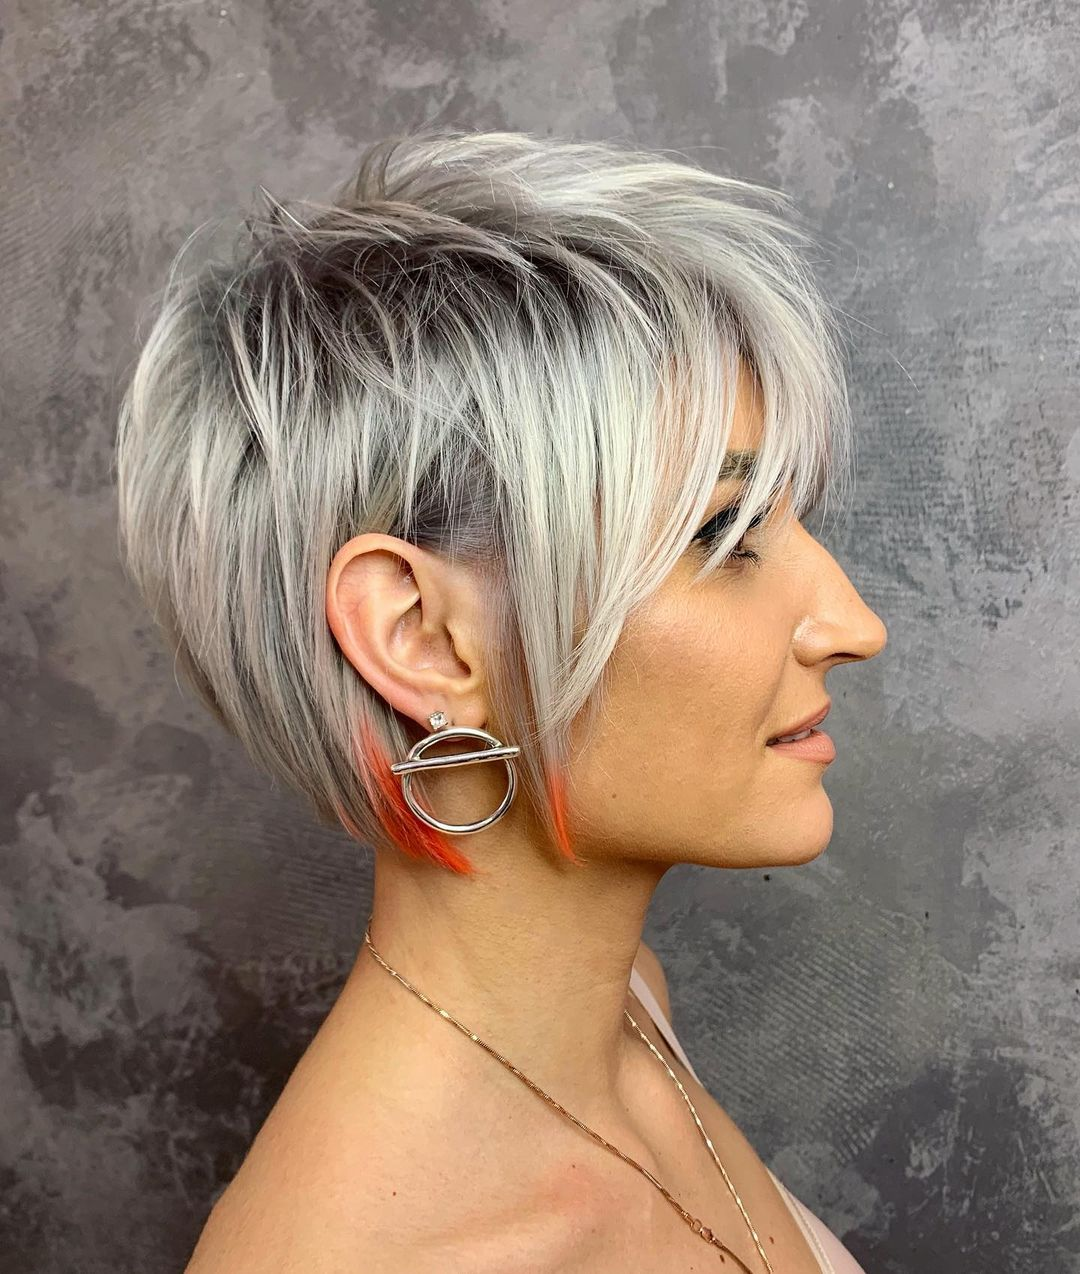 Stylish Short Pixie Cuts and Color 2021 - Women Short ...